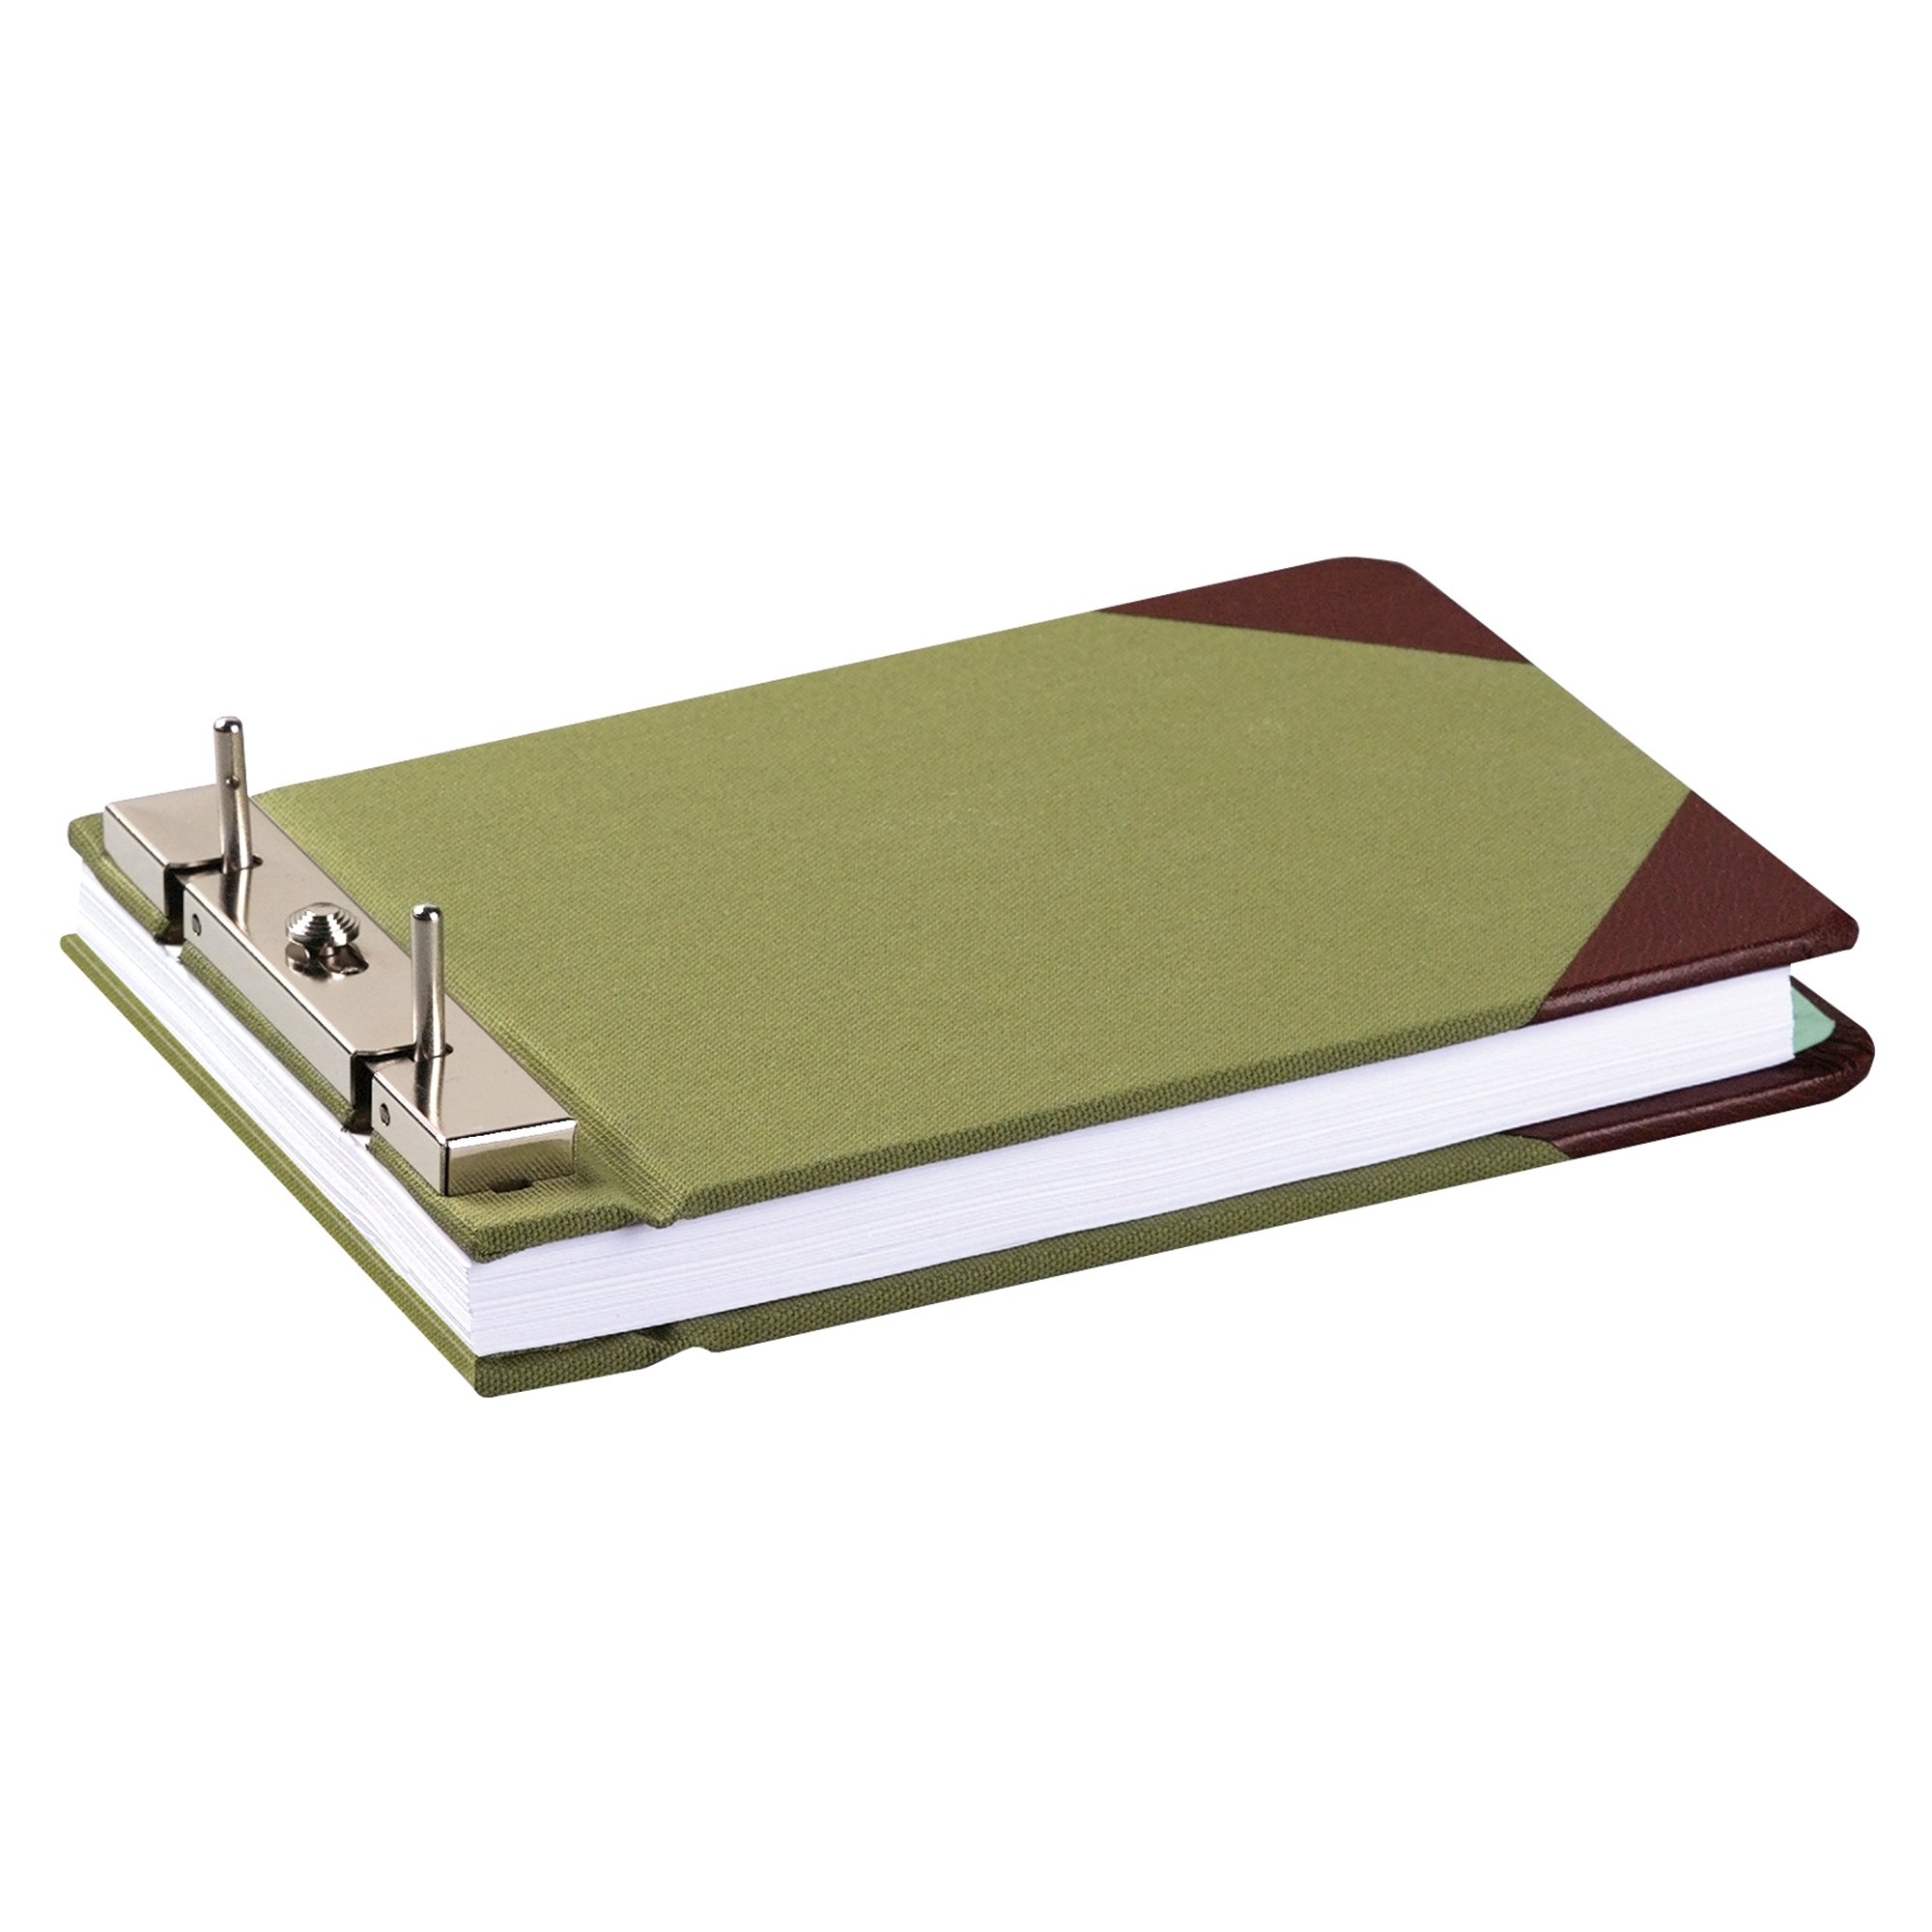 Wilson Jones Canvas Sectional Storage Post Binder For 8-1/2 X 5-1/2 Sheets, 2-3/4'' Post Spacing, Green Canvas, W278-05A by Wilson Jones